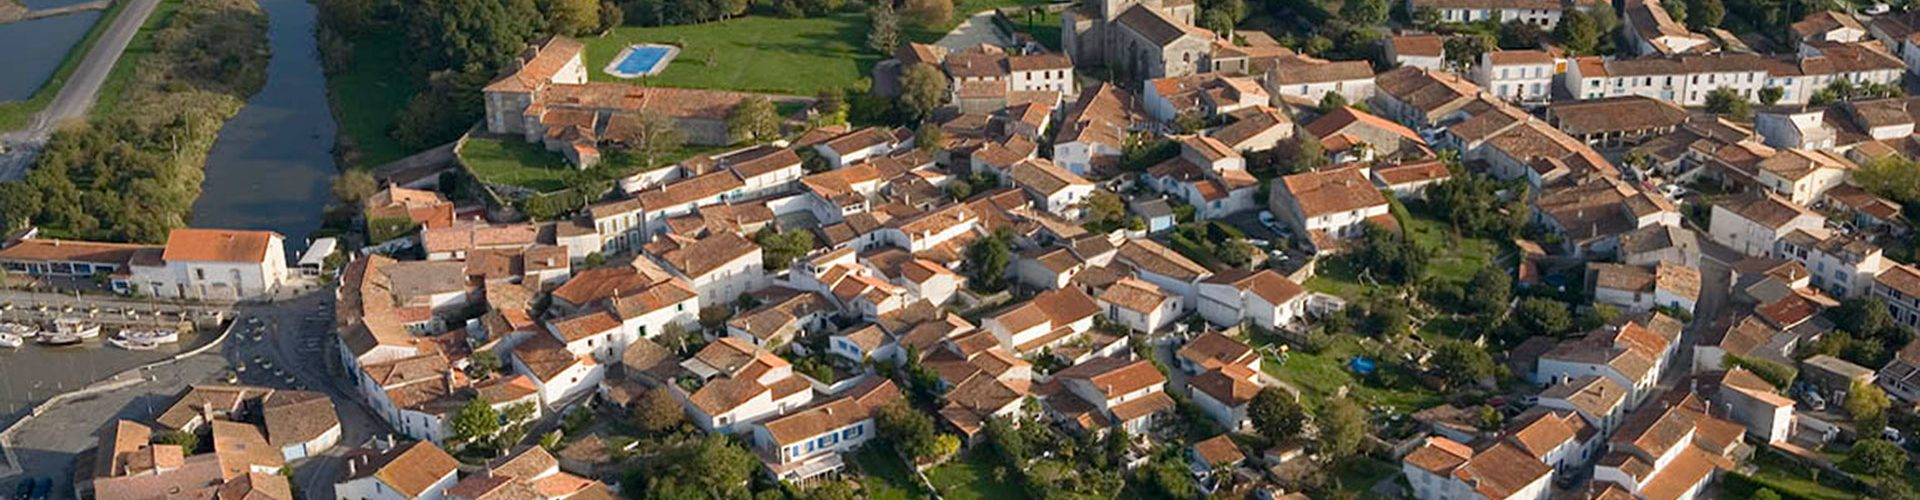 Un des plus beaux villages de France